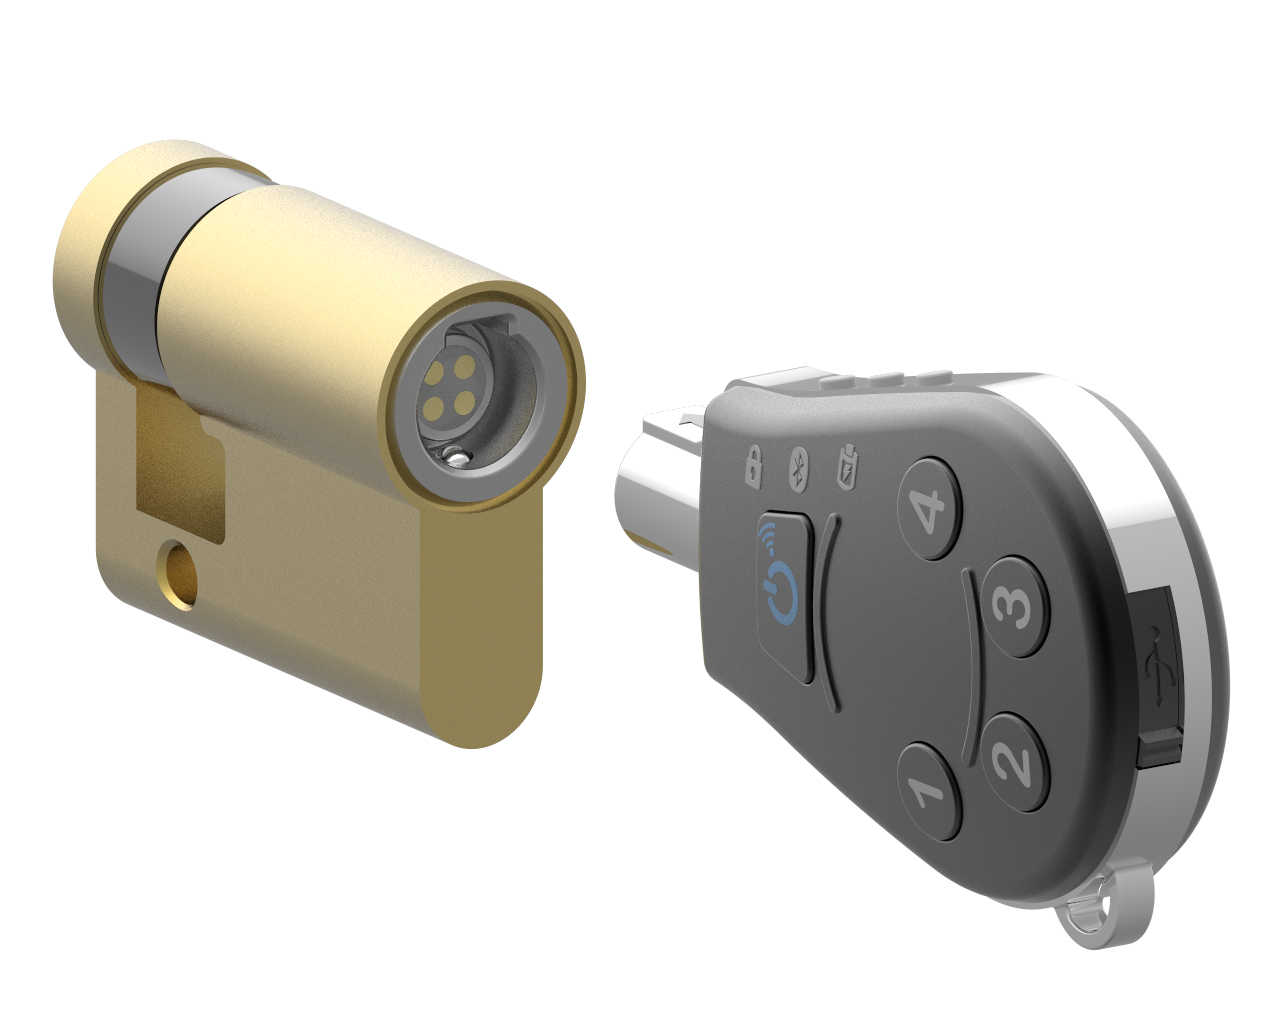 KP-A244 : ICT Compact Digital Lock  Key image